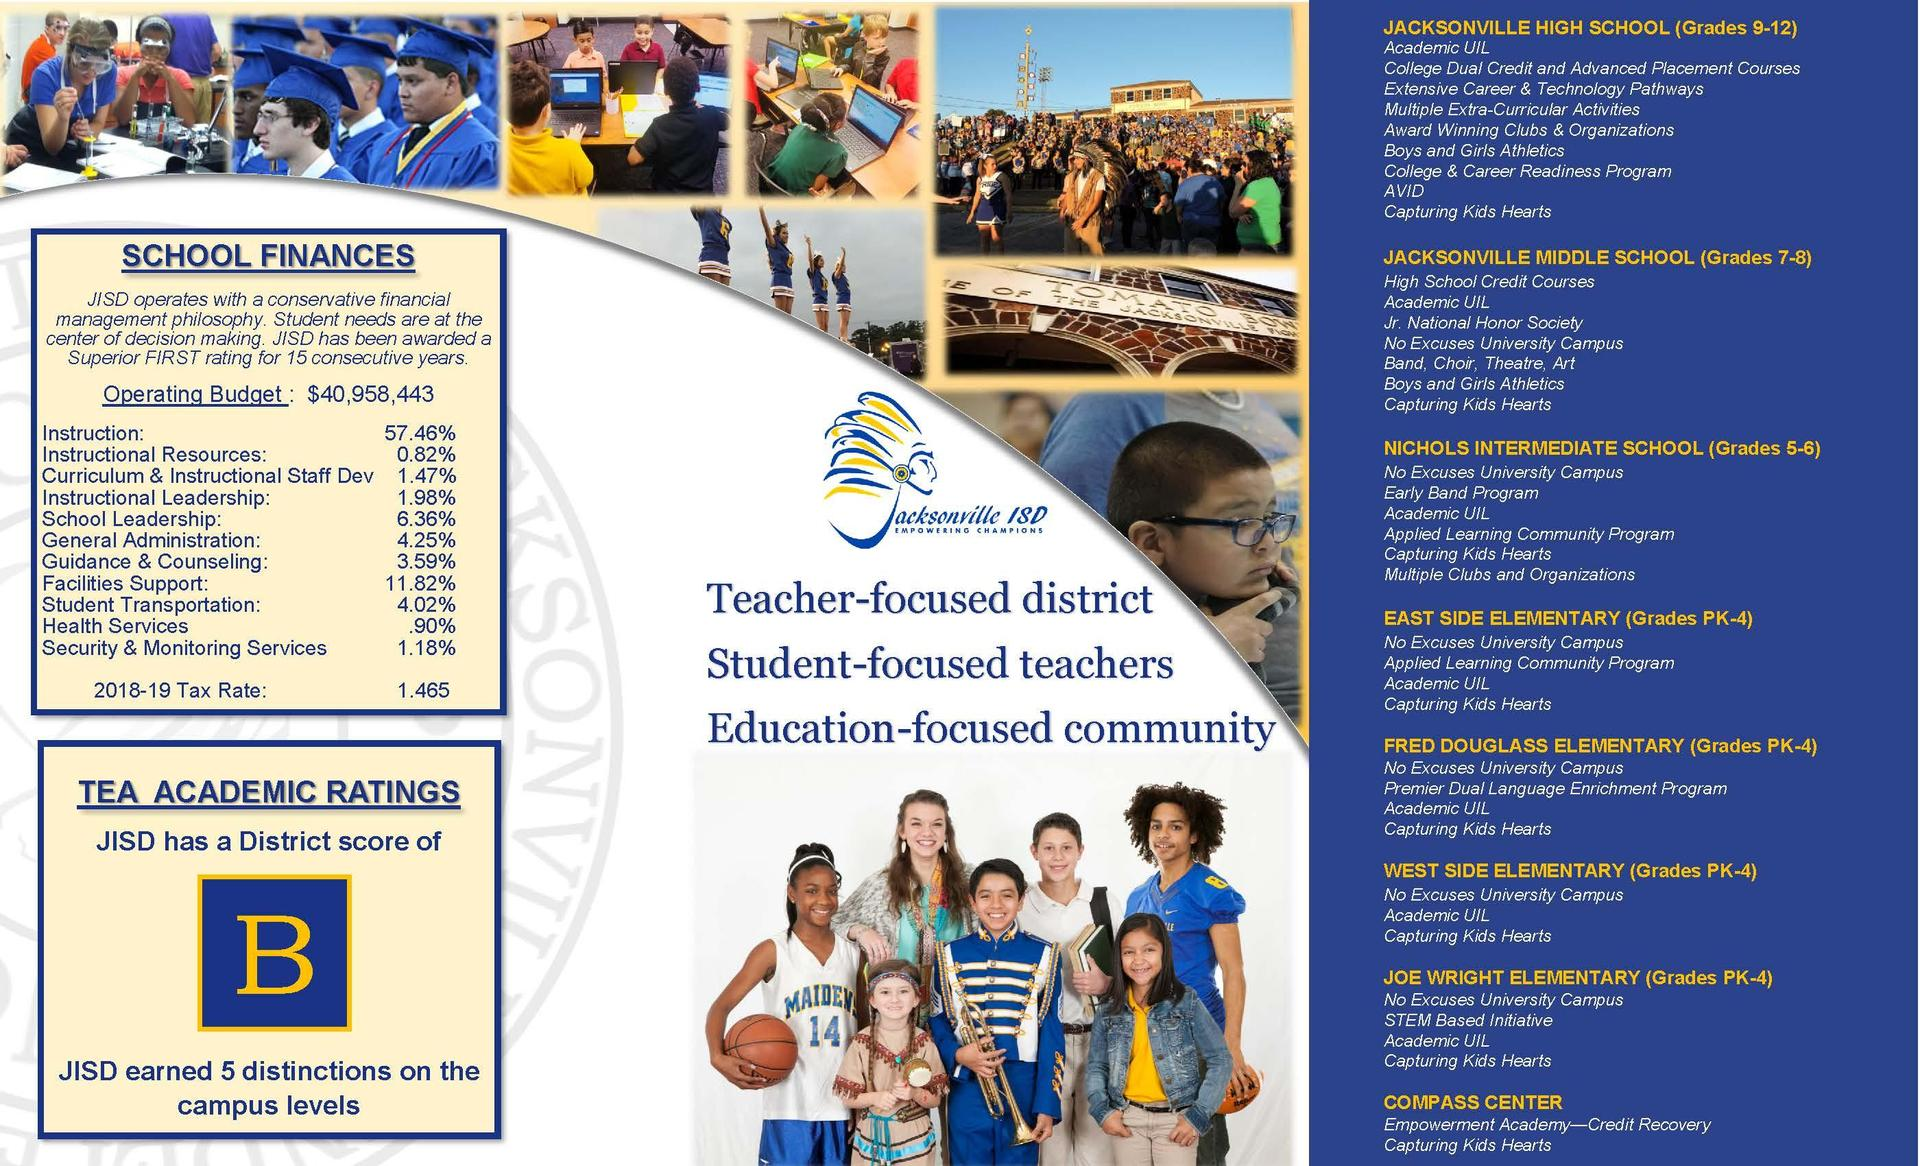 page 2 of informational brochure